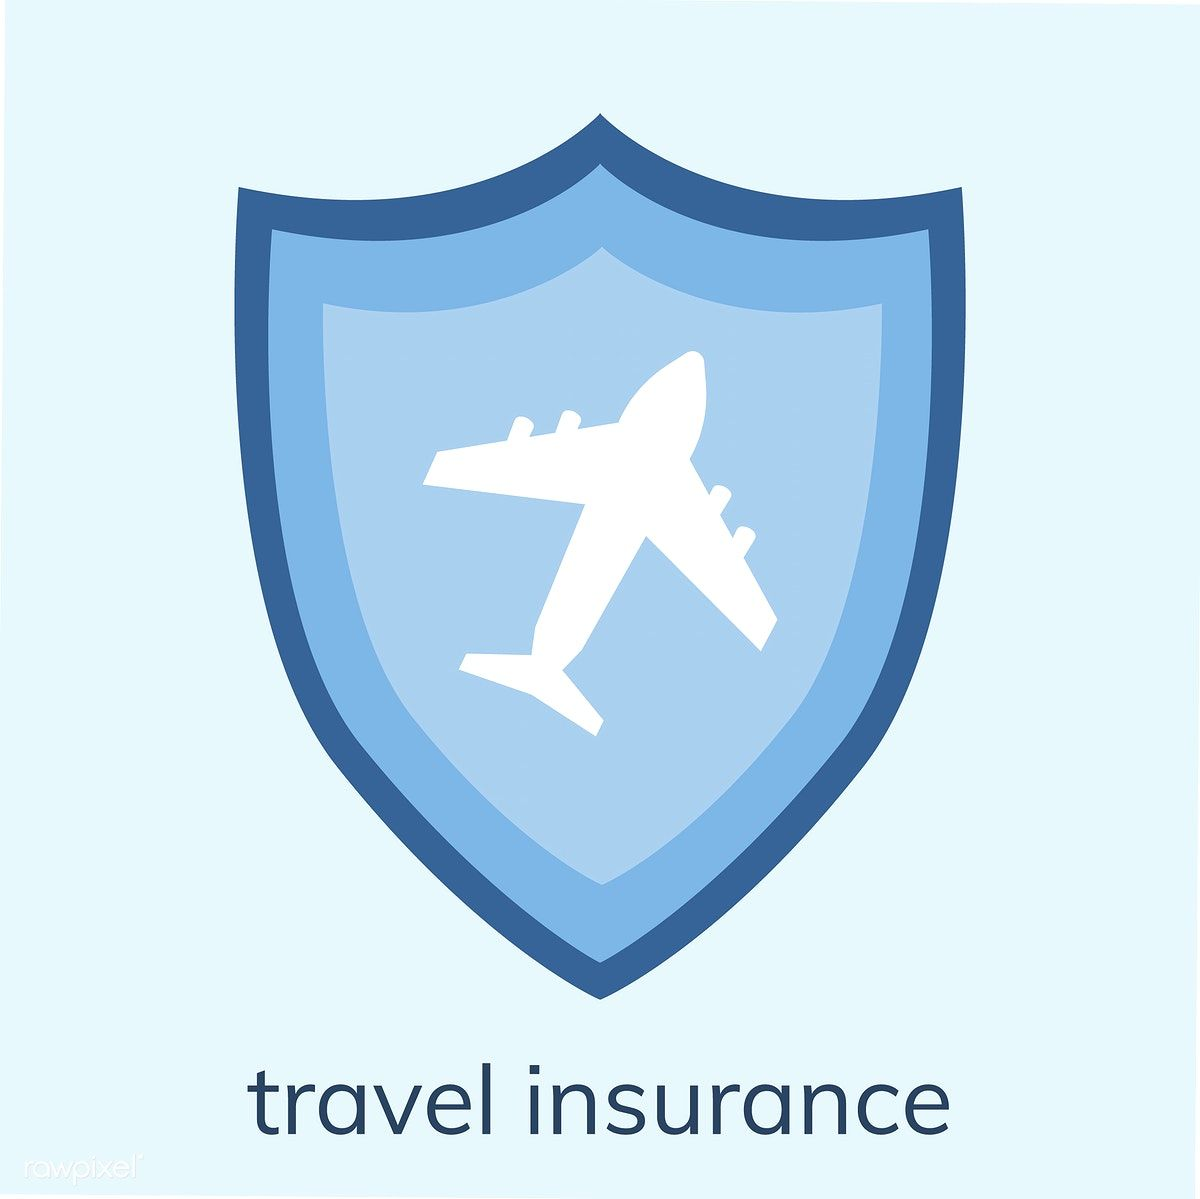 Illustration of a travel insurance icon free image by